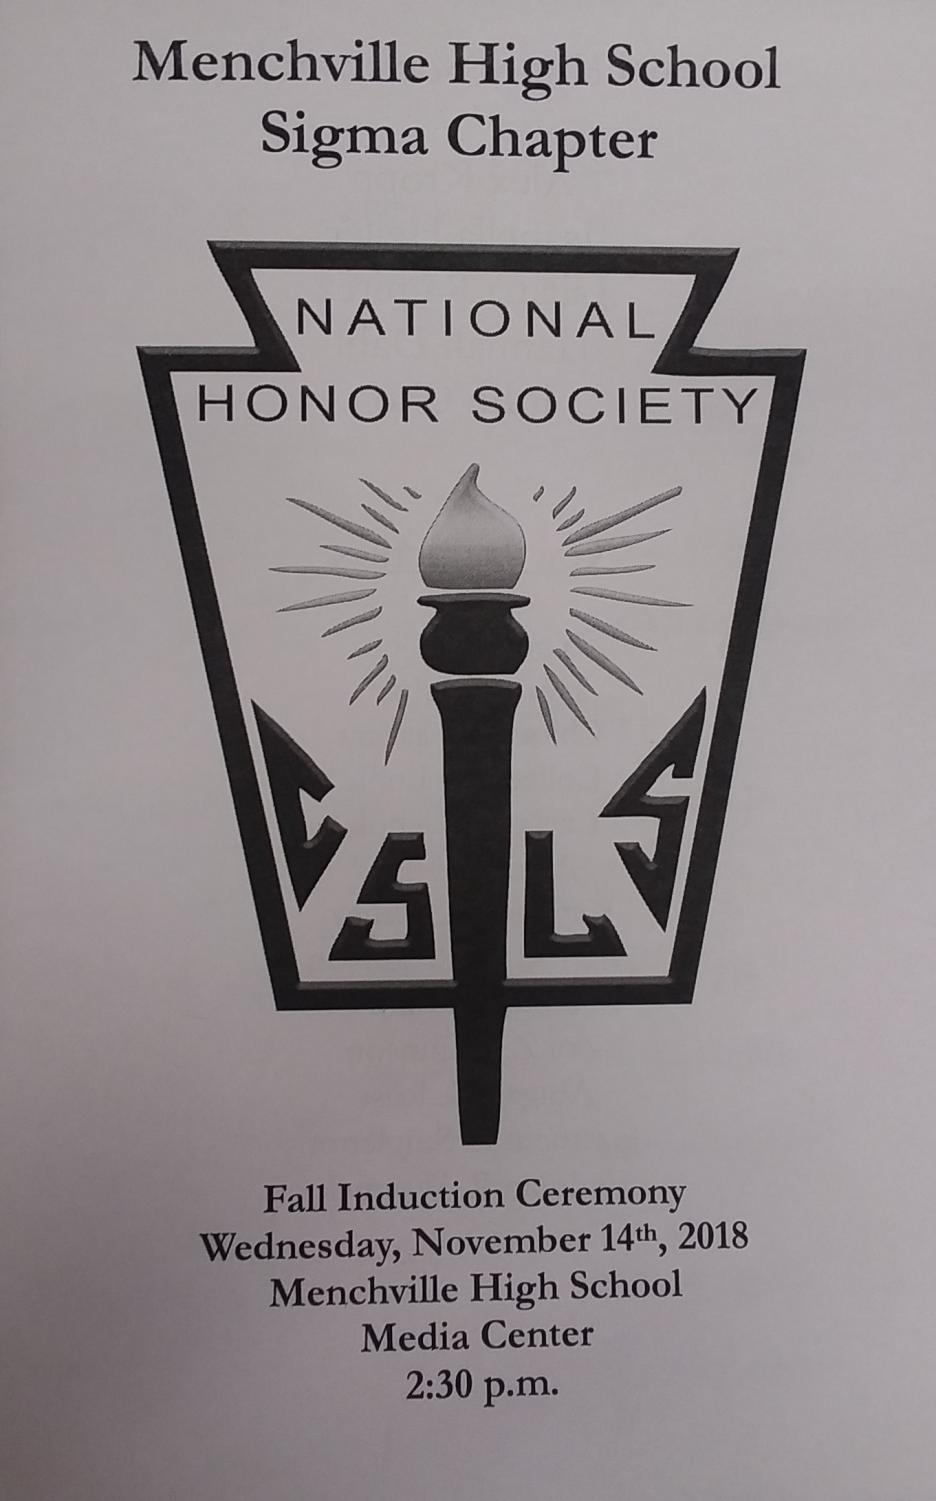 Thirteen new senior members were honored and inducted into the National Honor Society in Wednesday's ceremony.